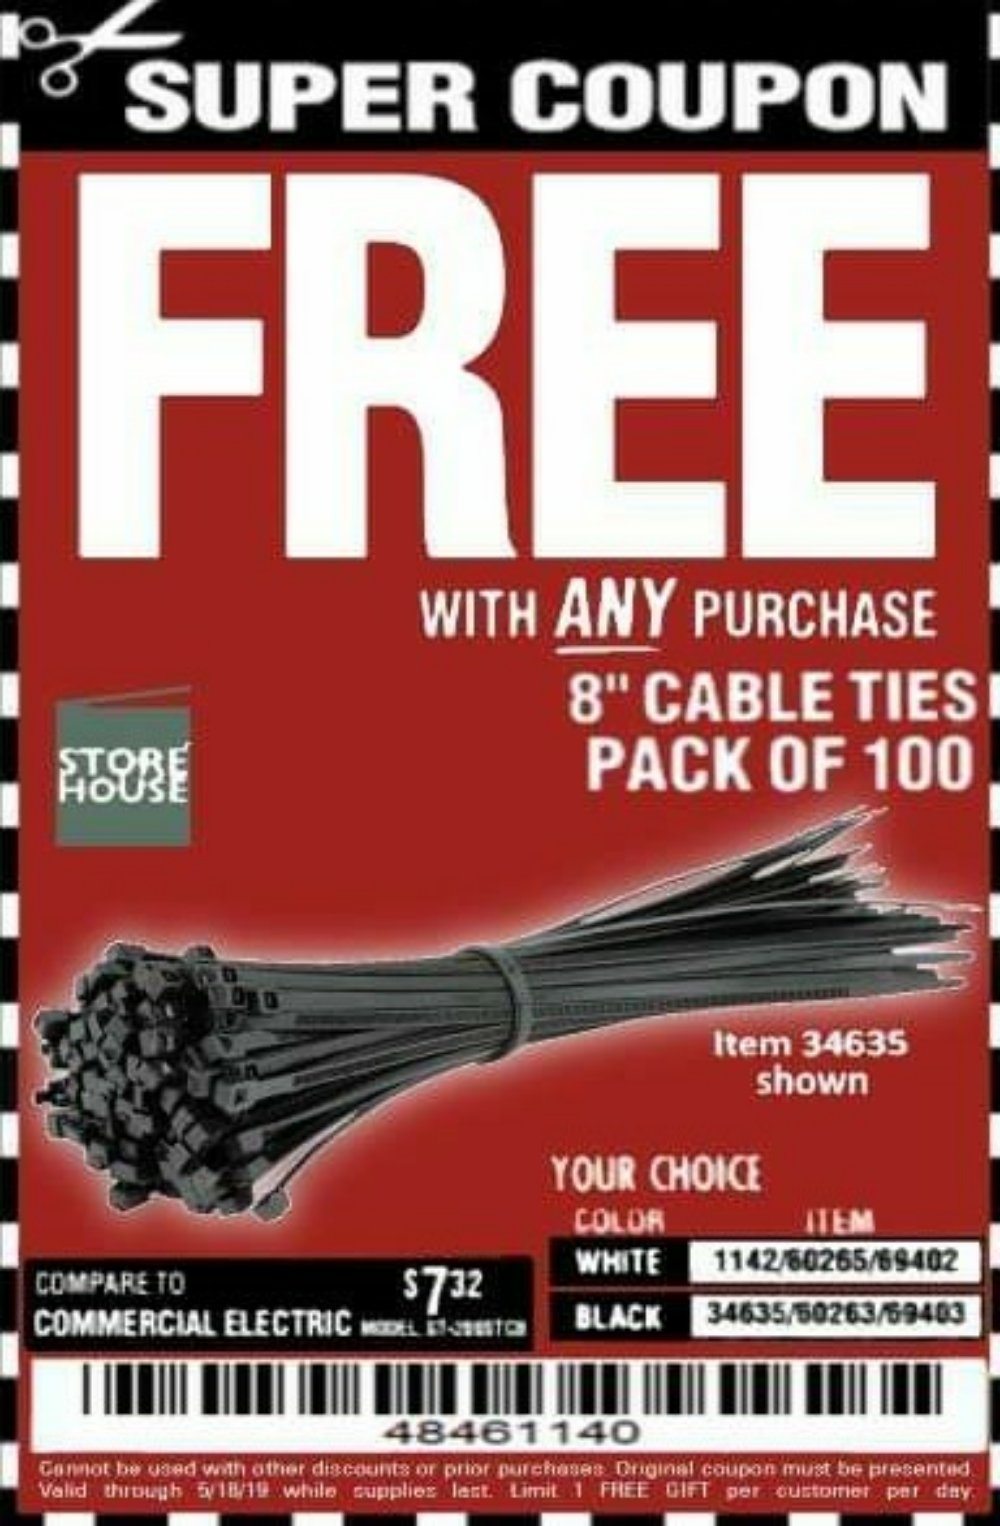 Harbor Freight Coupon, HF Coupons - FREE - 8